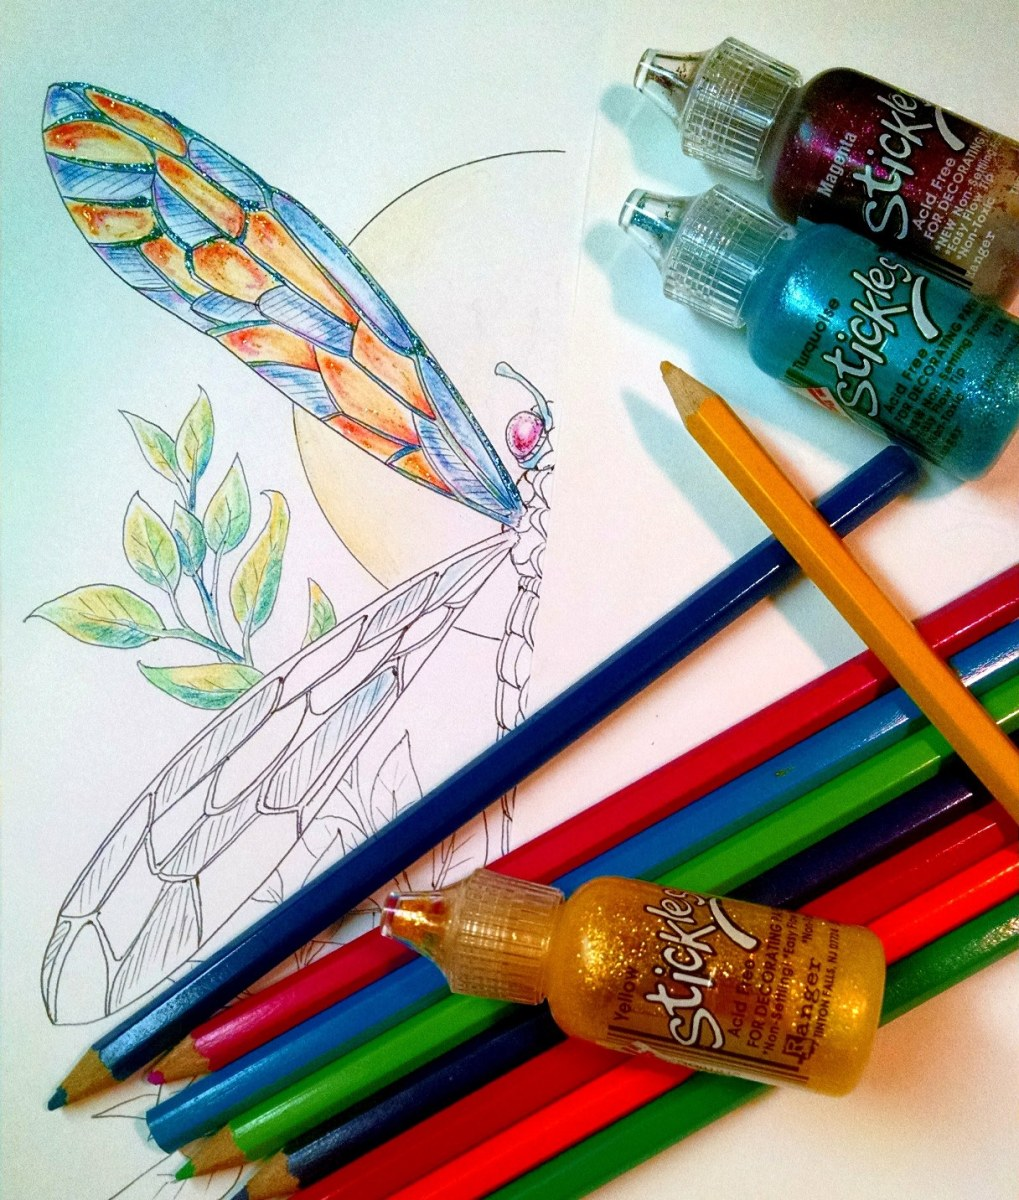 Coloring isn't limited to crayons. Touches like glitter, gel pens, and metallic pens add interesting effects.